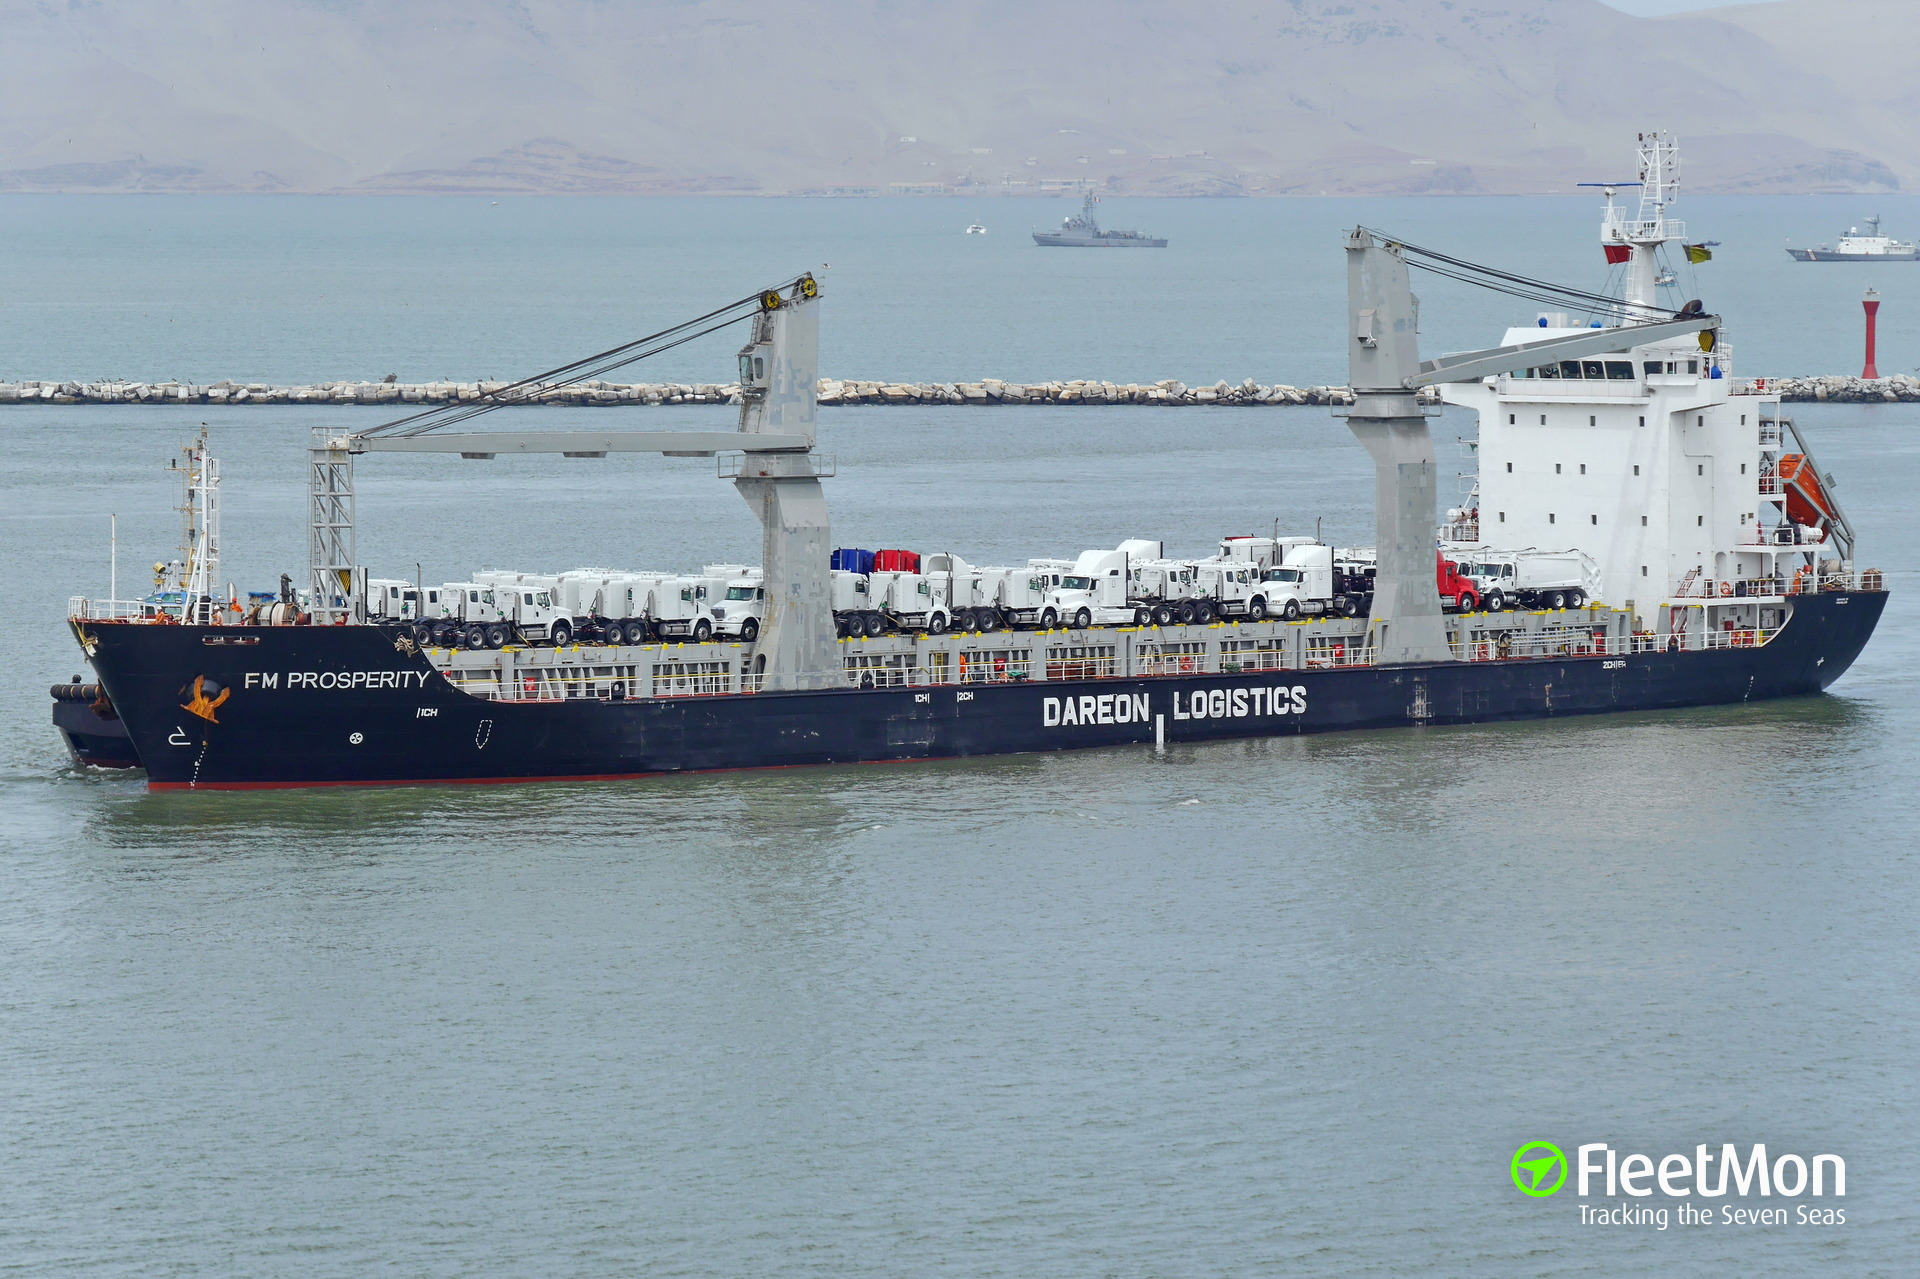 Chinese freighter FM Prosperity aground in Baja California, Mexico